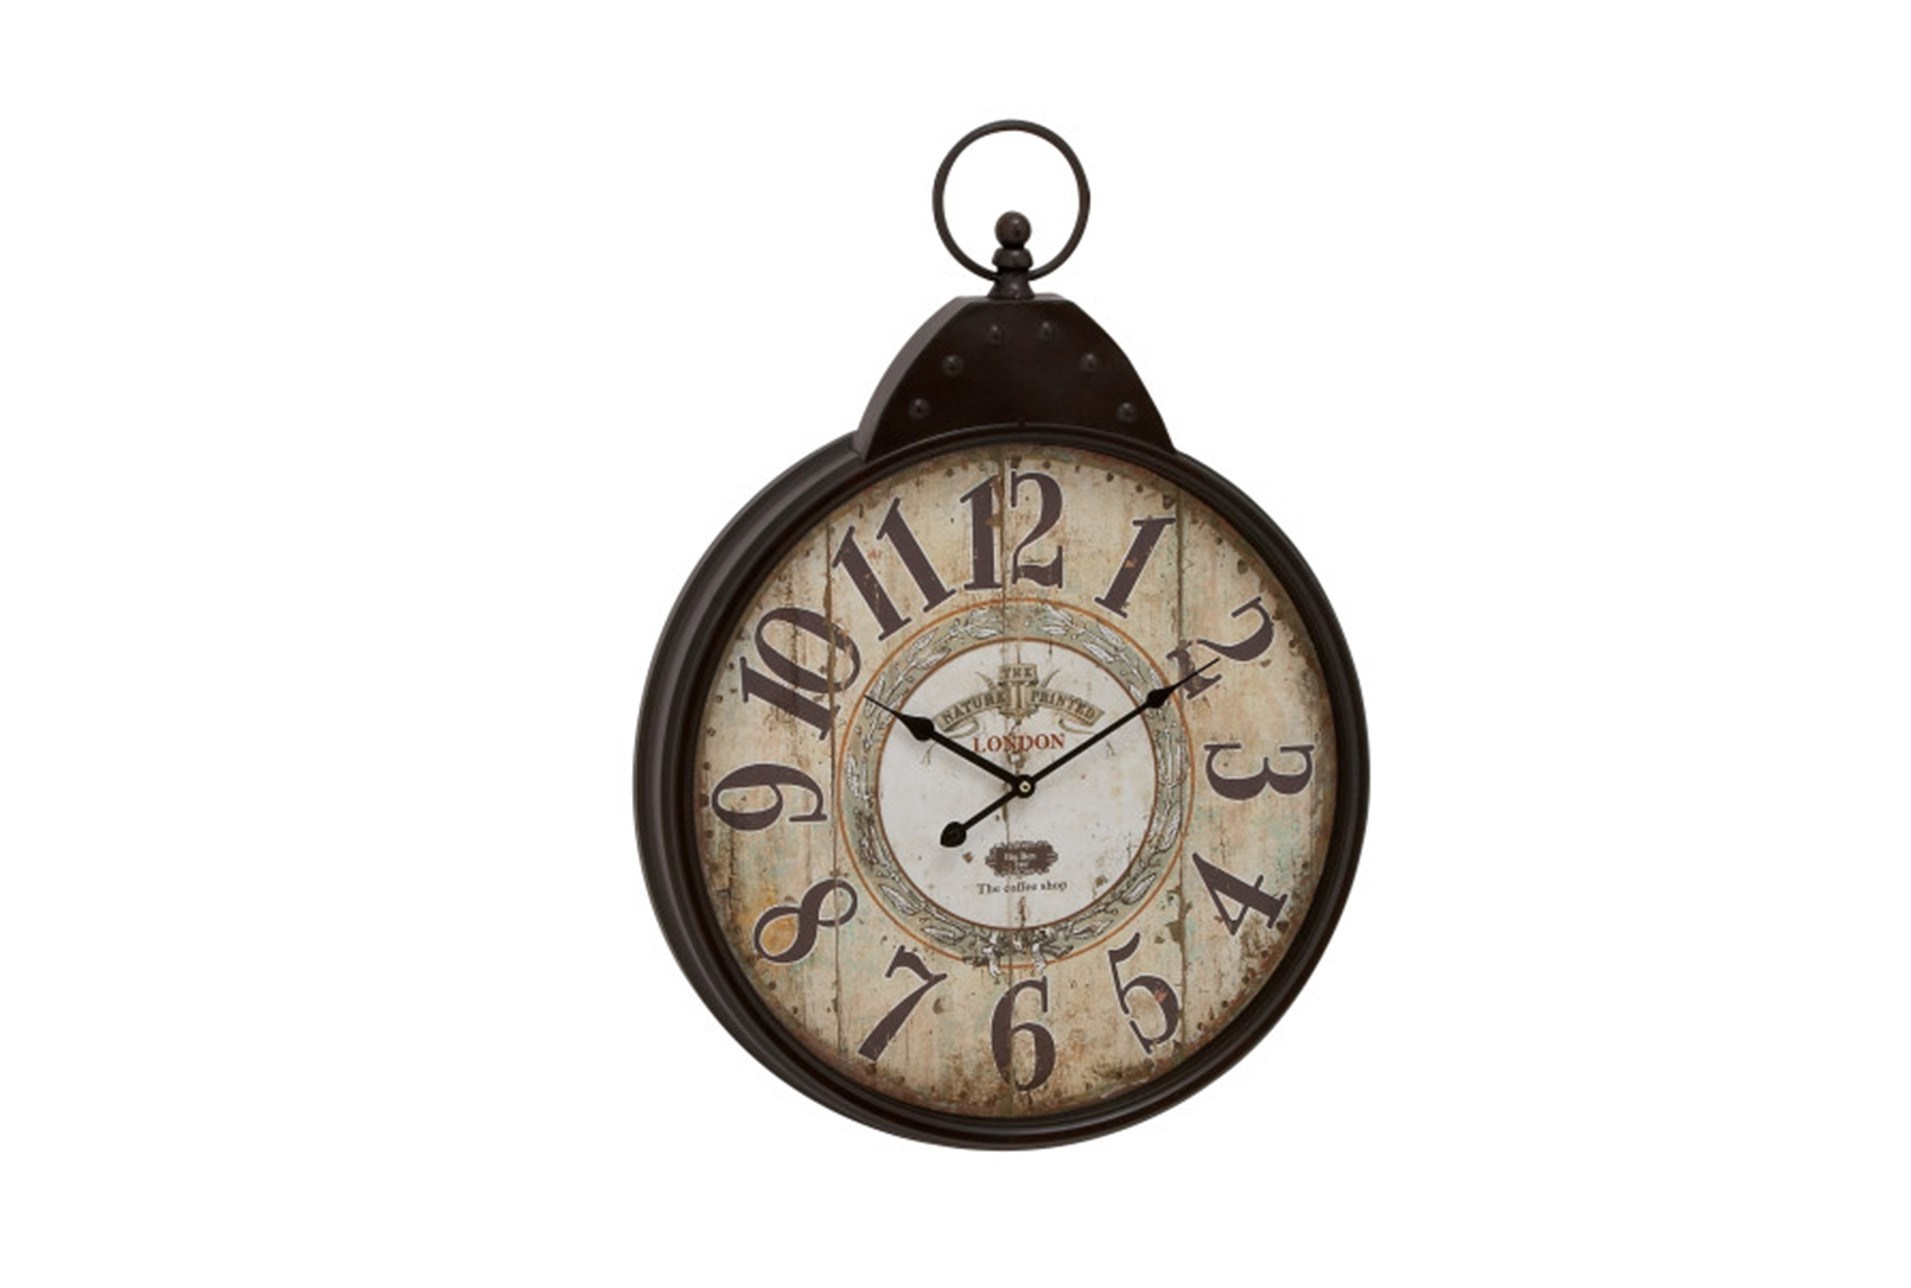 28 Inch London Rustic Wall Clock Living Spaces